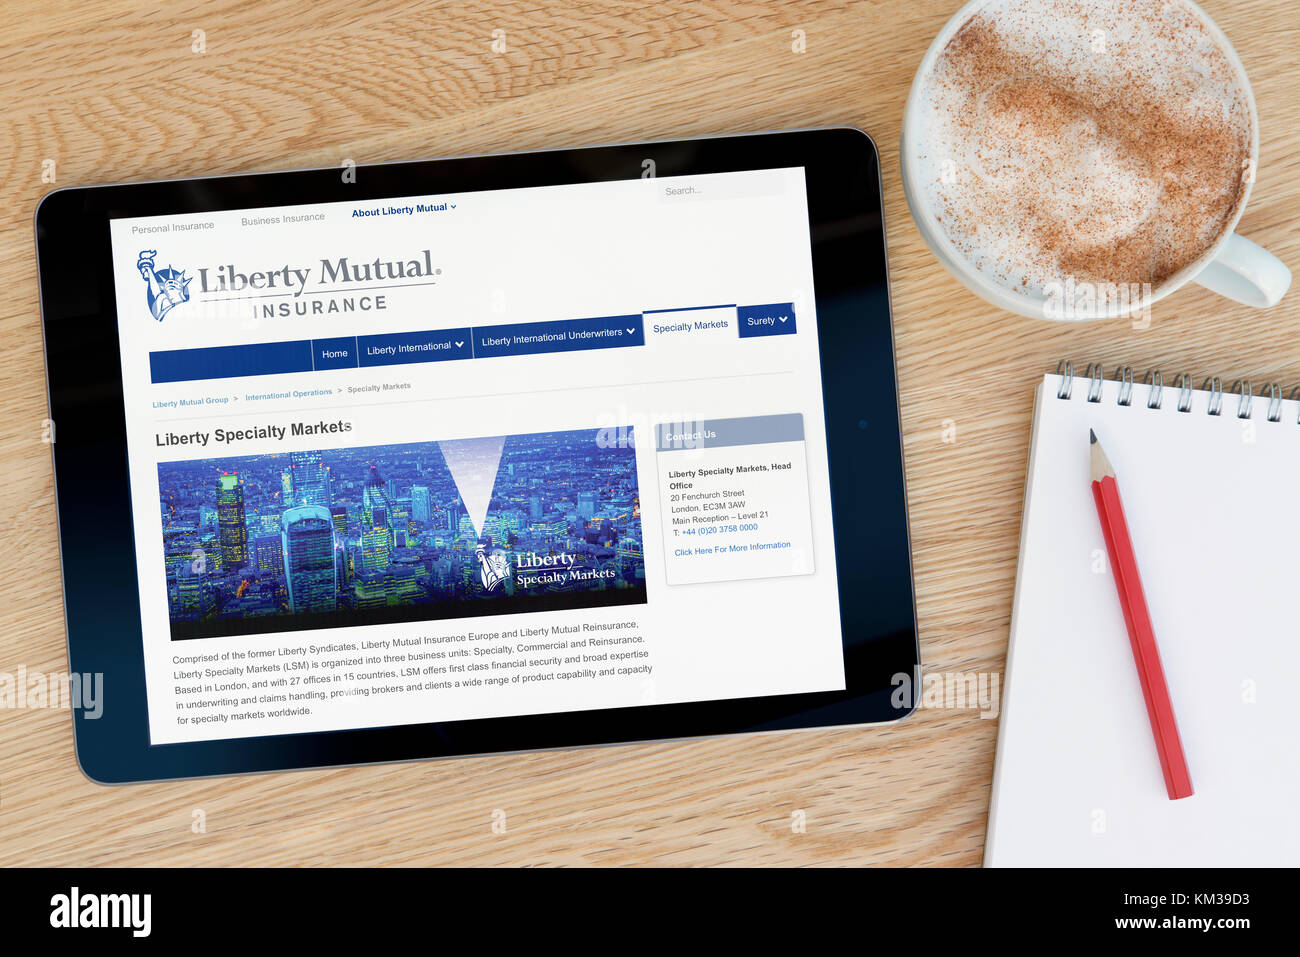 The Liberty Mutual website on an iPad tablet device which rests on a wooden table beside a notepad and pencil and - Stock Image